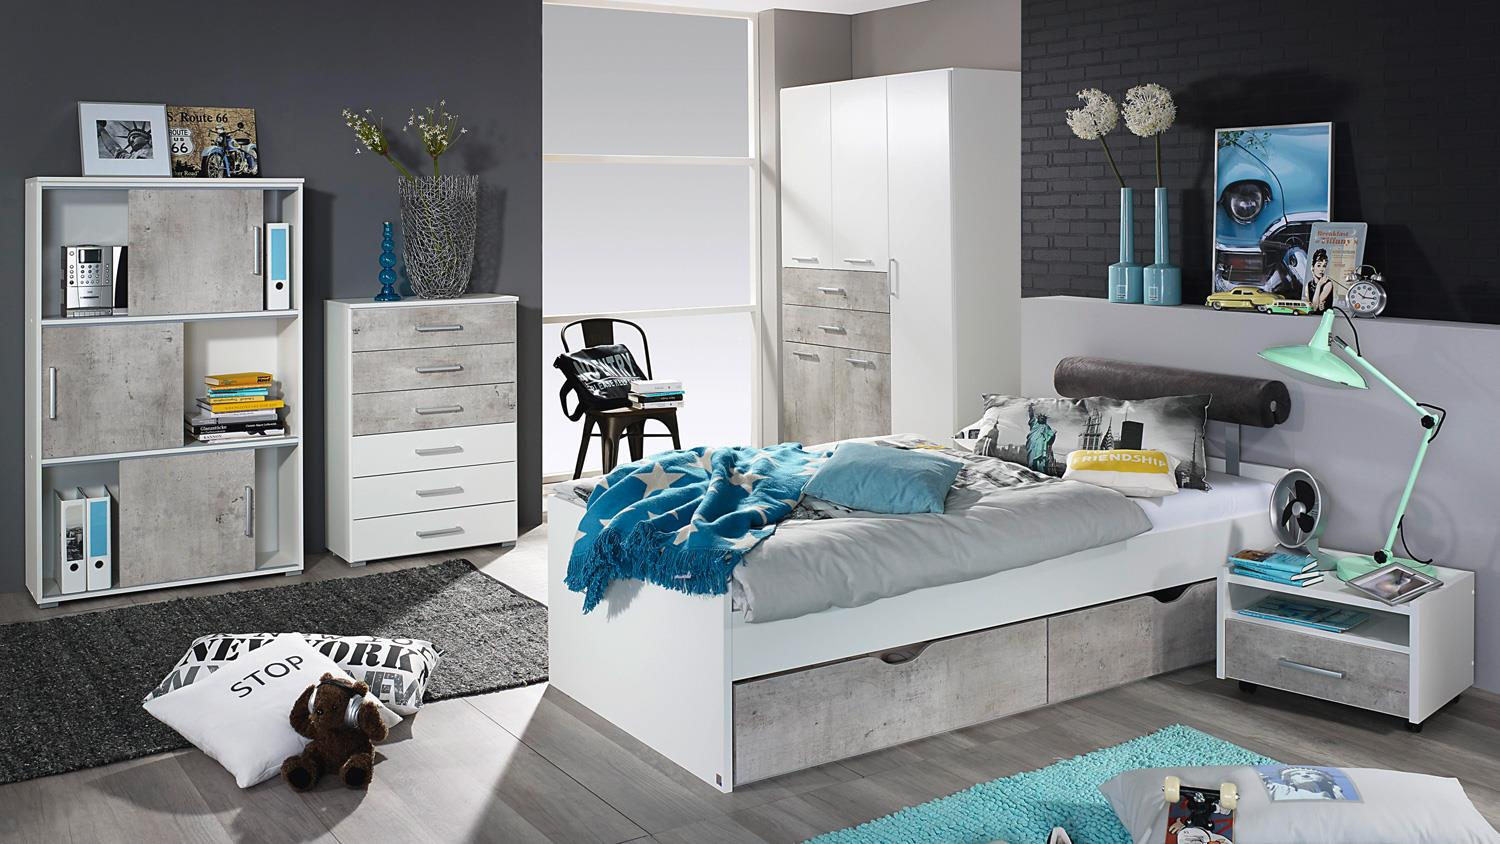 jugendzimmer set 1 mailo kinderzimmer bett schrank nako wei und beton. Black Bedroom Furniture Sets. Home Design Ideas